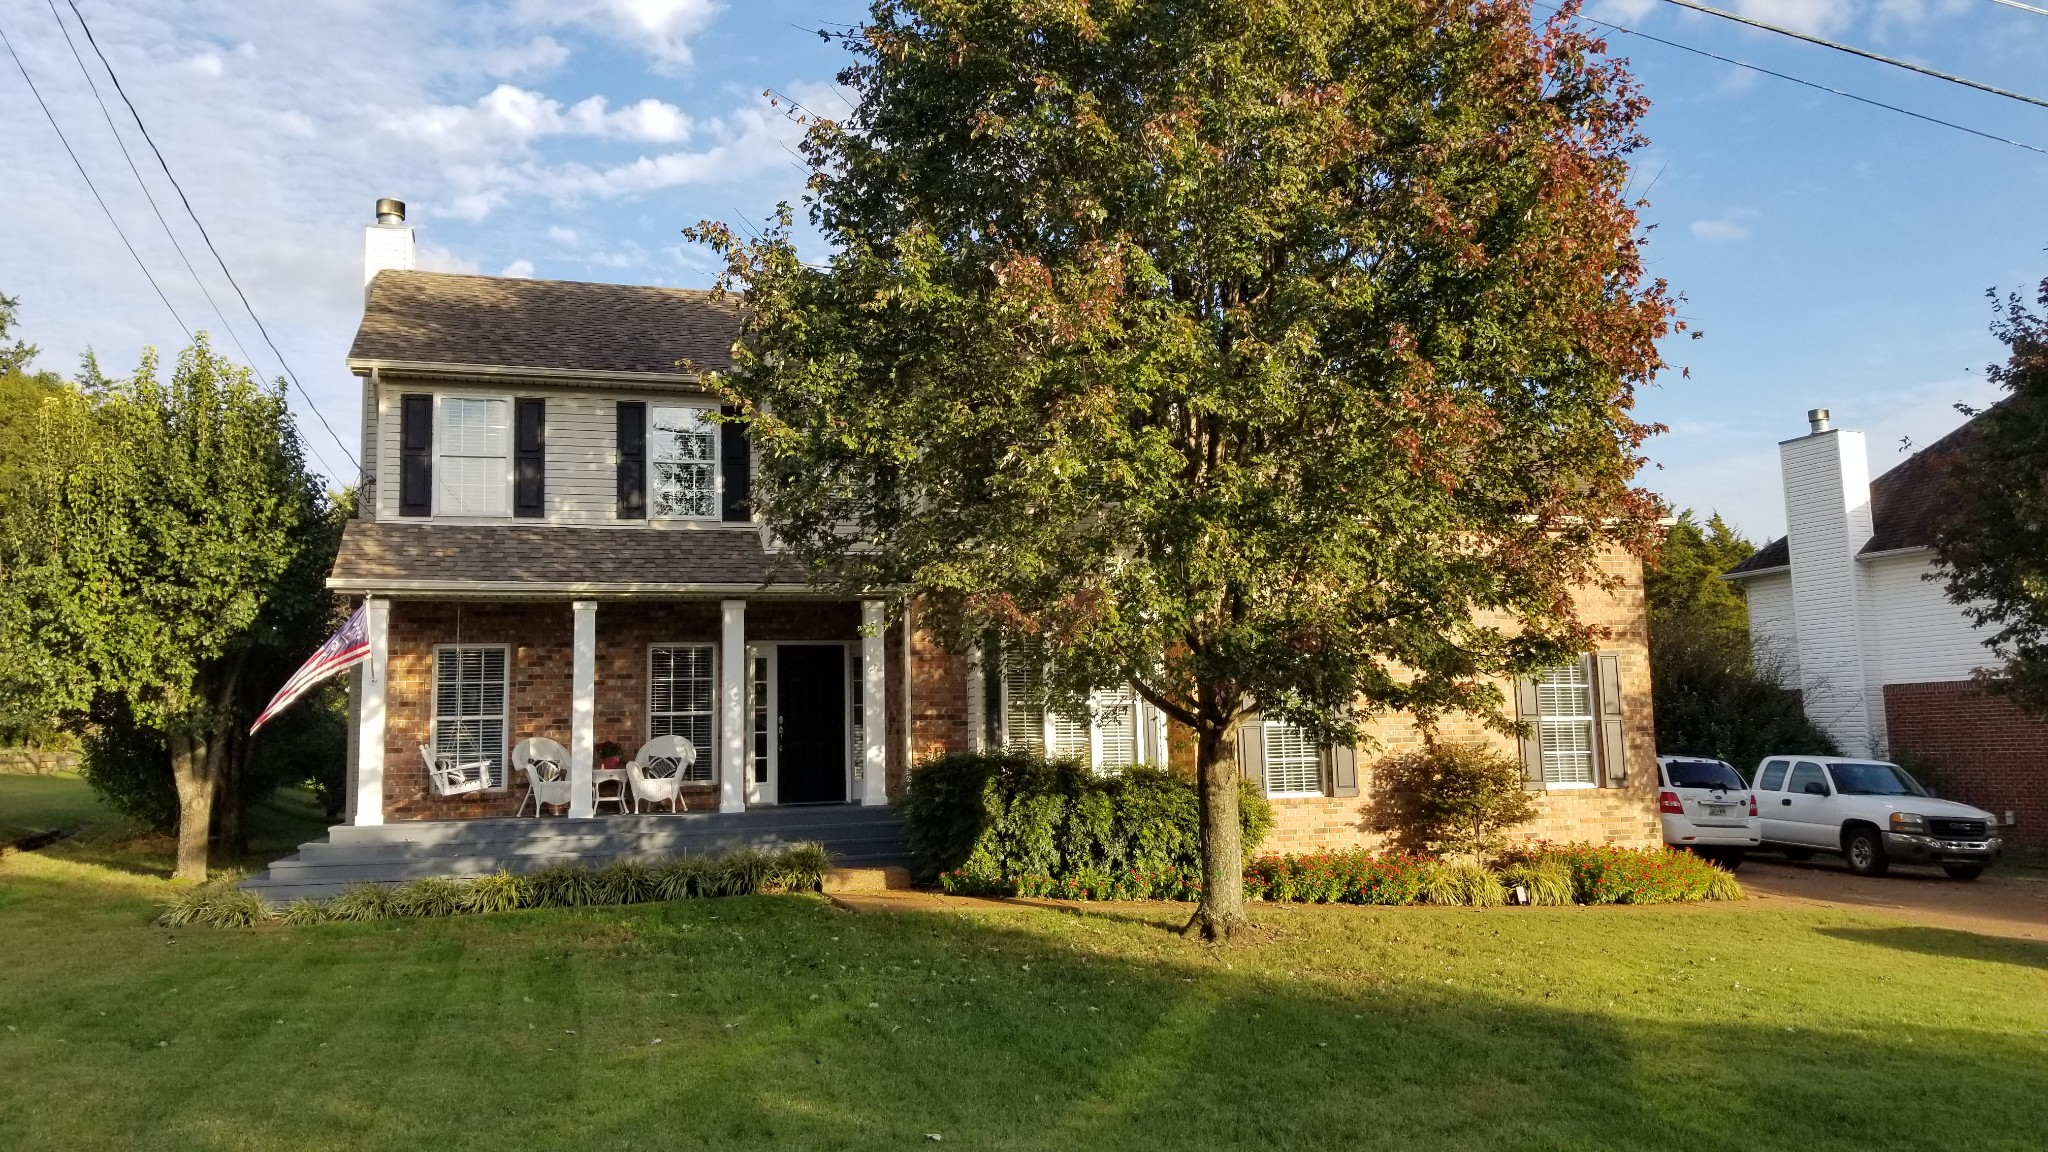 MULTIPLE OFFERS. SEND HIGHEST & BEST BY 2:45PM 10-24-2021.  3 bedroom, 2.5 bath, huge bonus room, trey ceiling master suite, walk in attic storage, separate laundry room, side entry garage, gazebo, storage shed and a great location!  Inside shows like a model home! New HVAC Sept 27th, 2021.